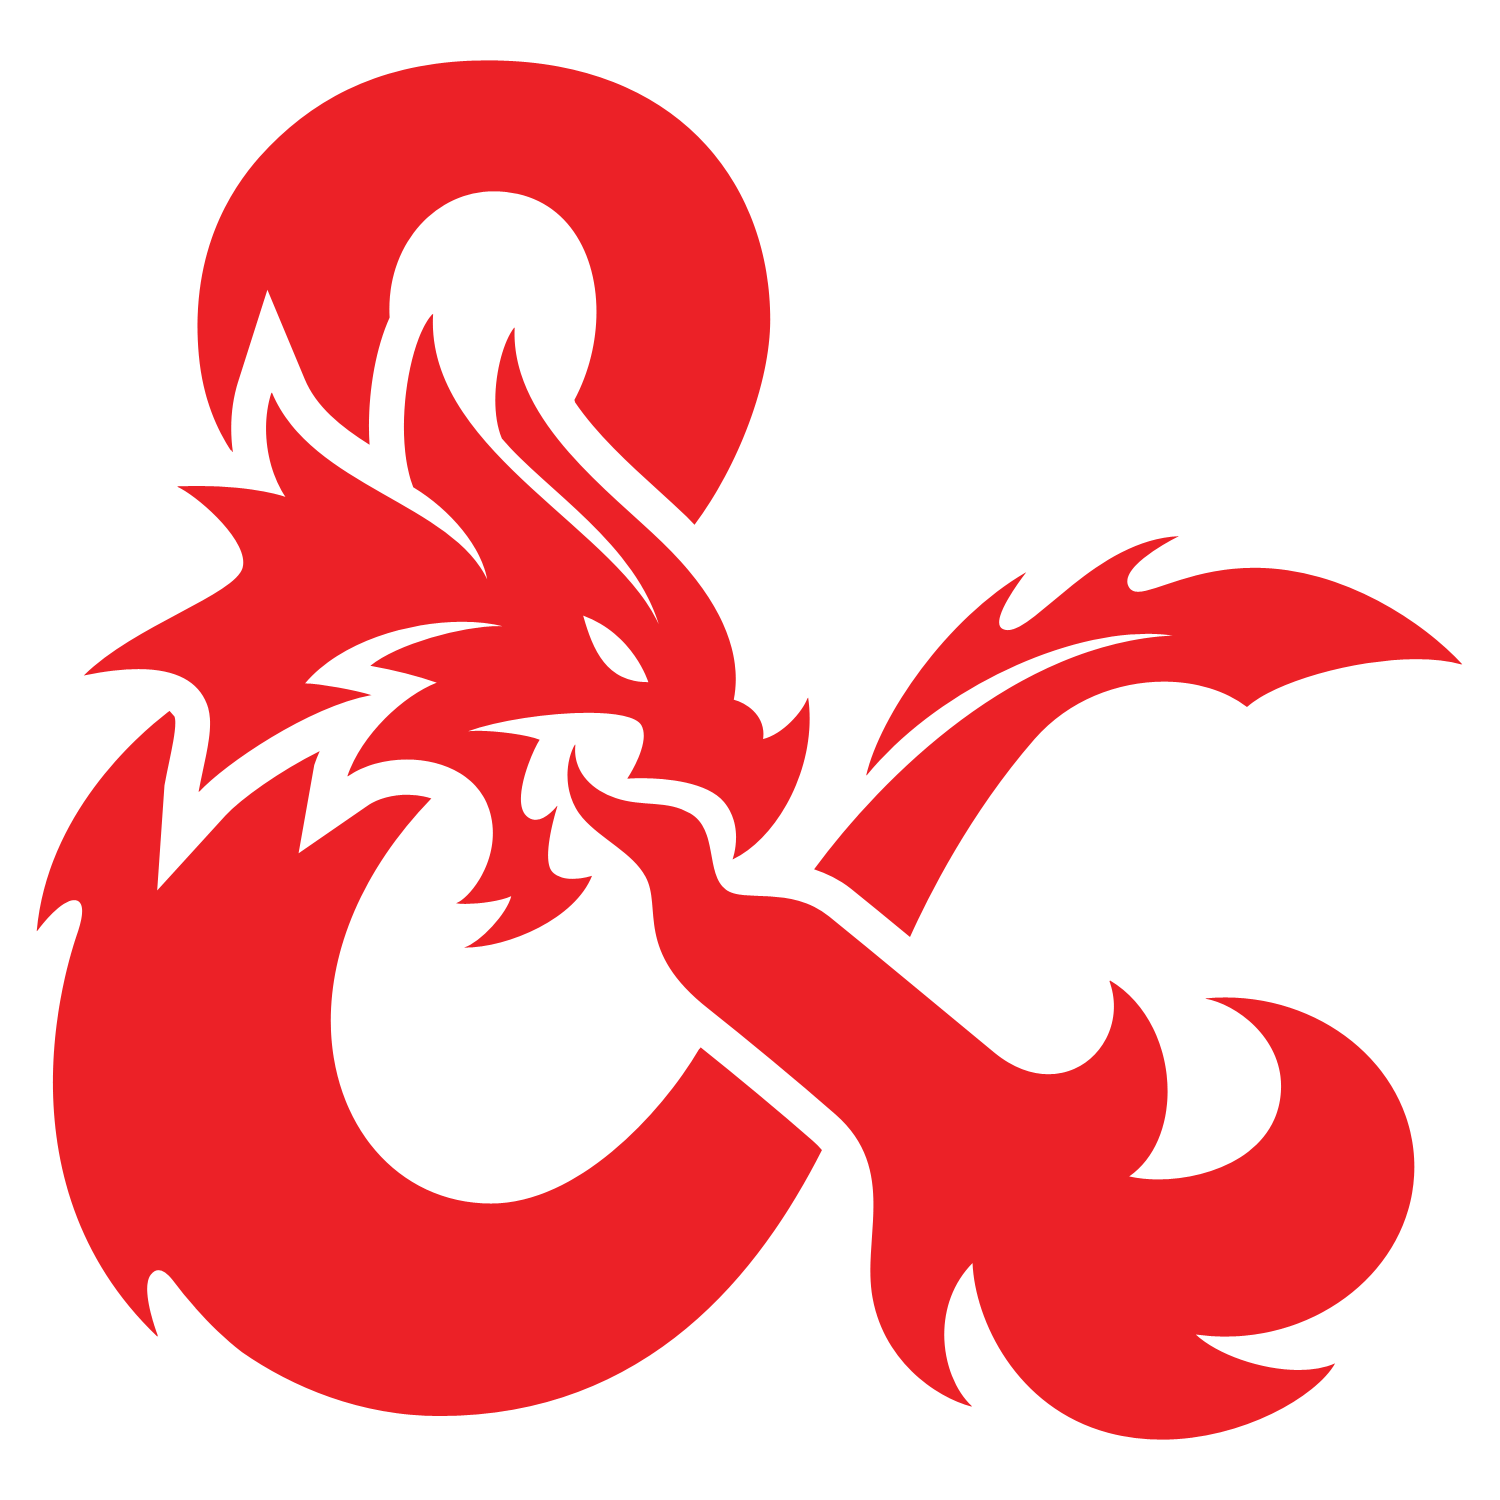 The Dungeons and Dragons Ampersand logo